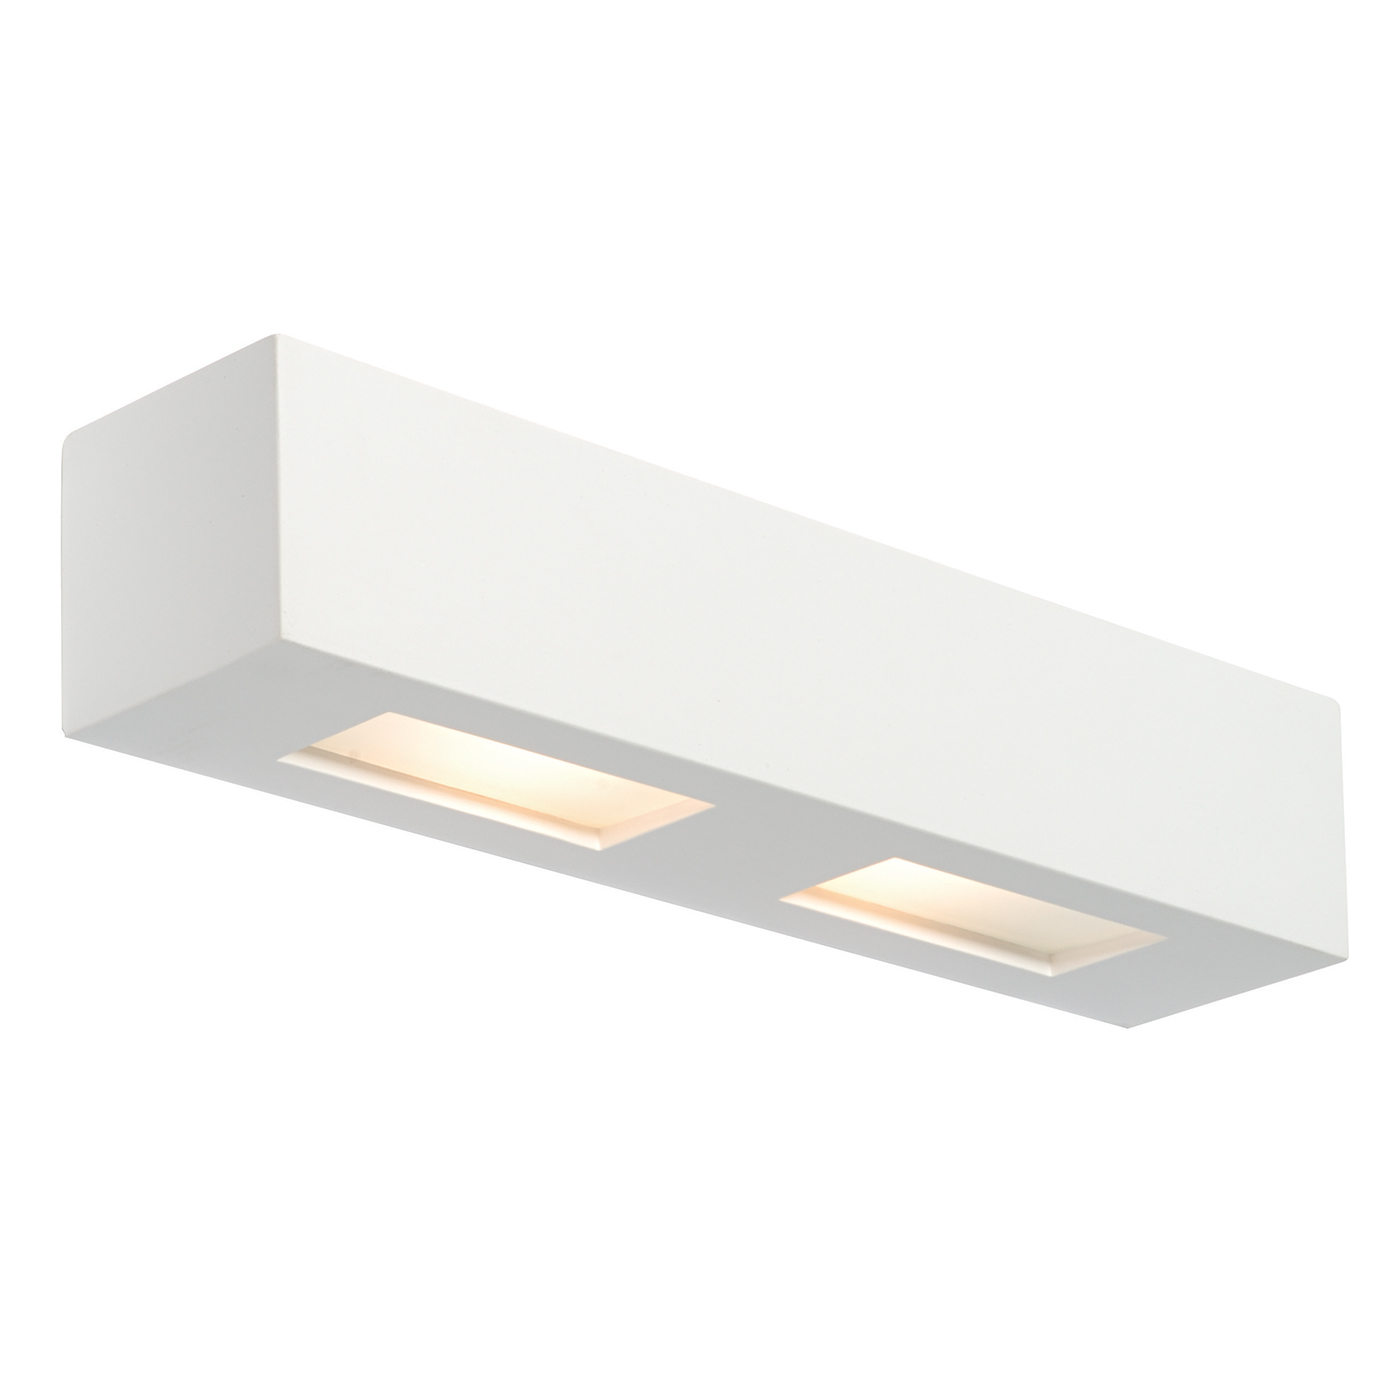 Endon Box 2lt wall light 28W White plaster & frosted glass Thumbnail 1